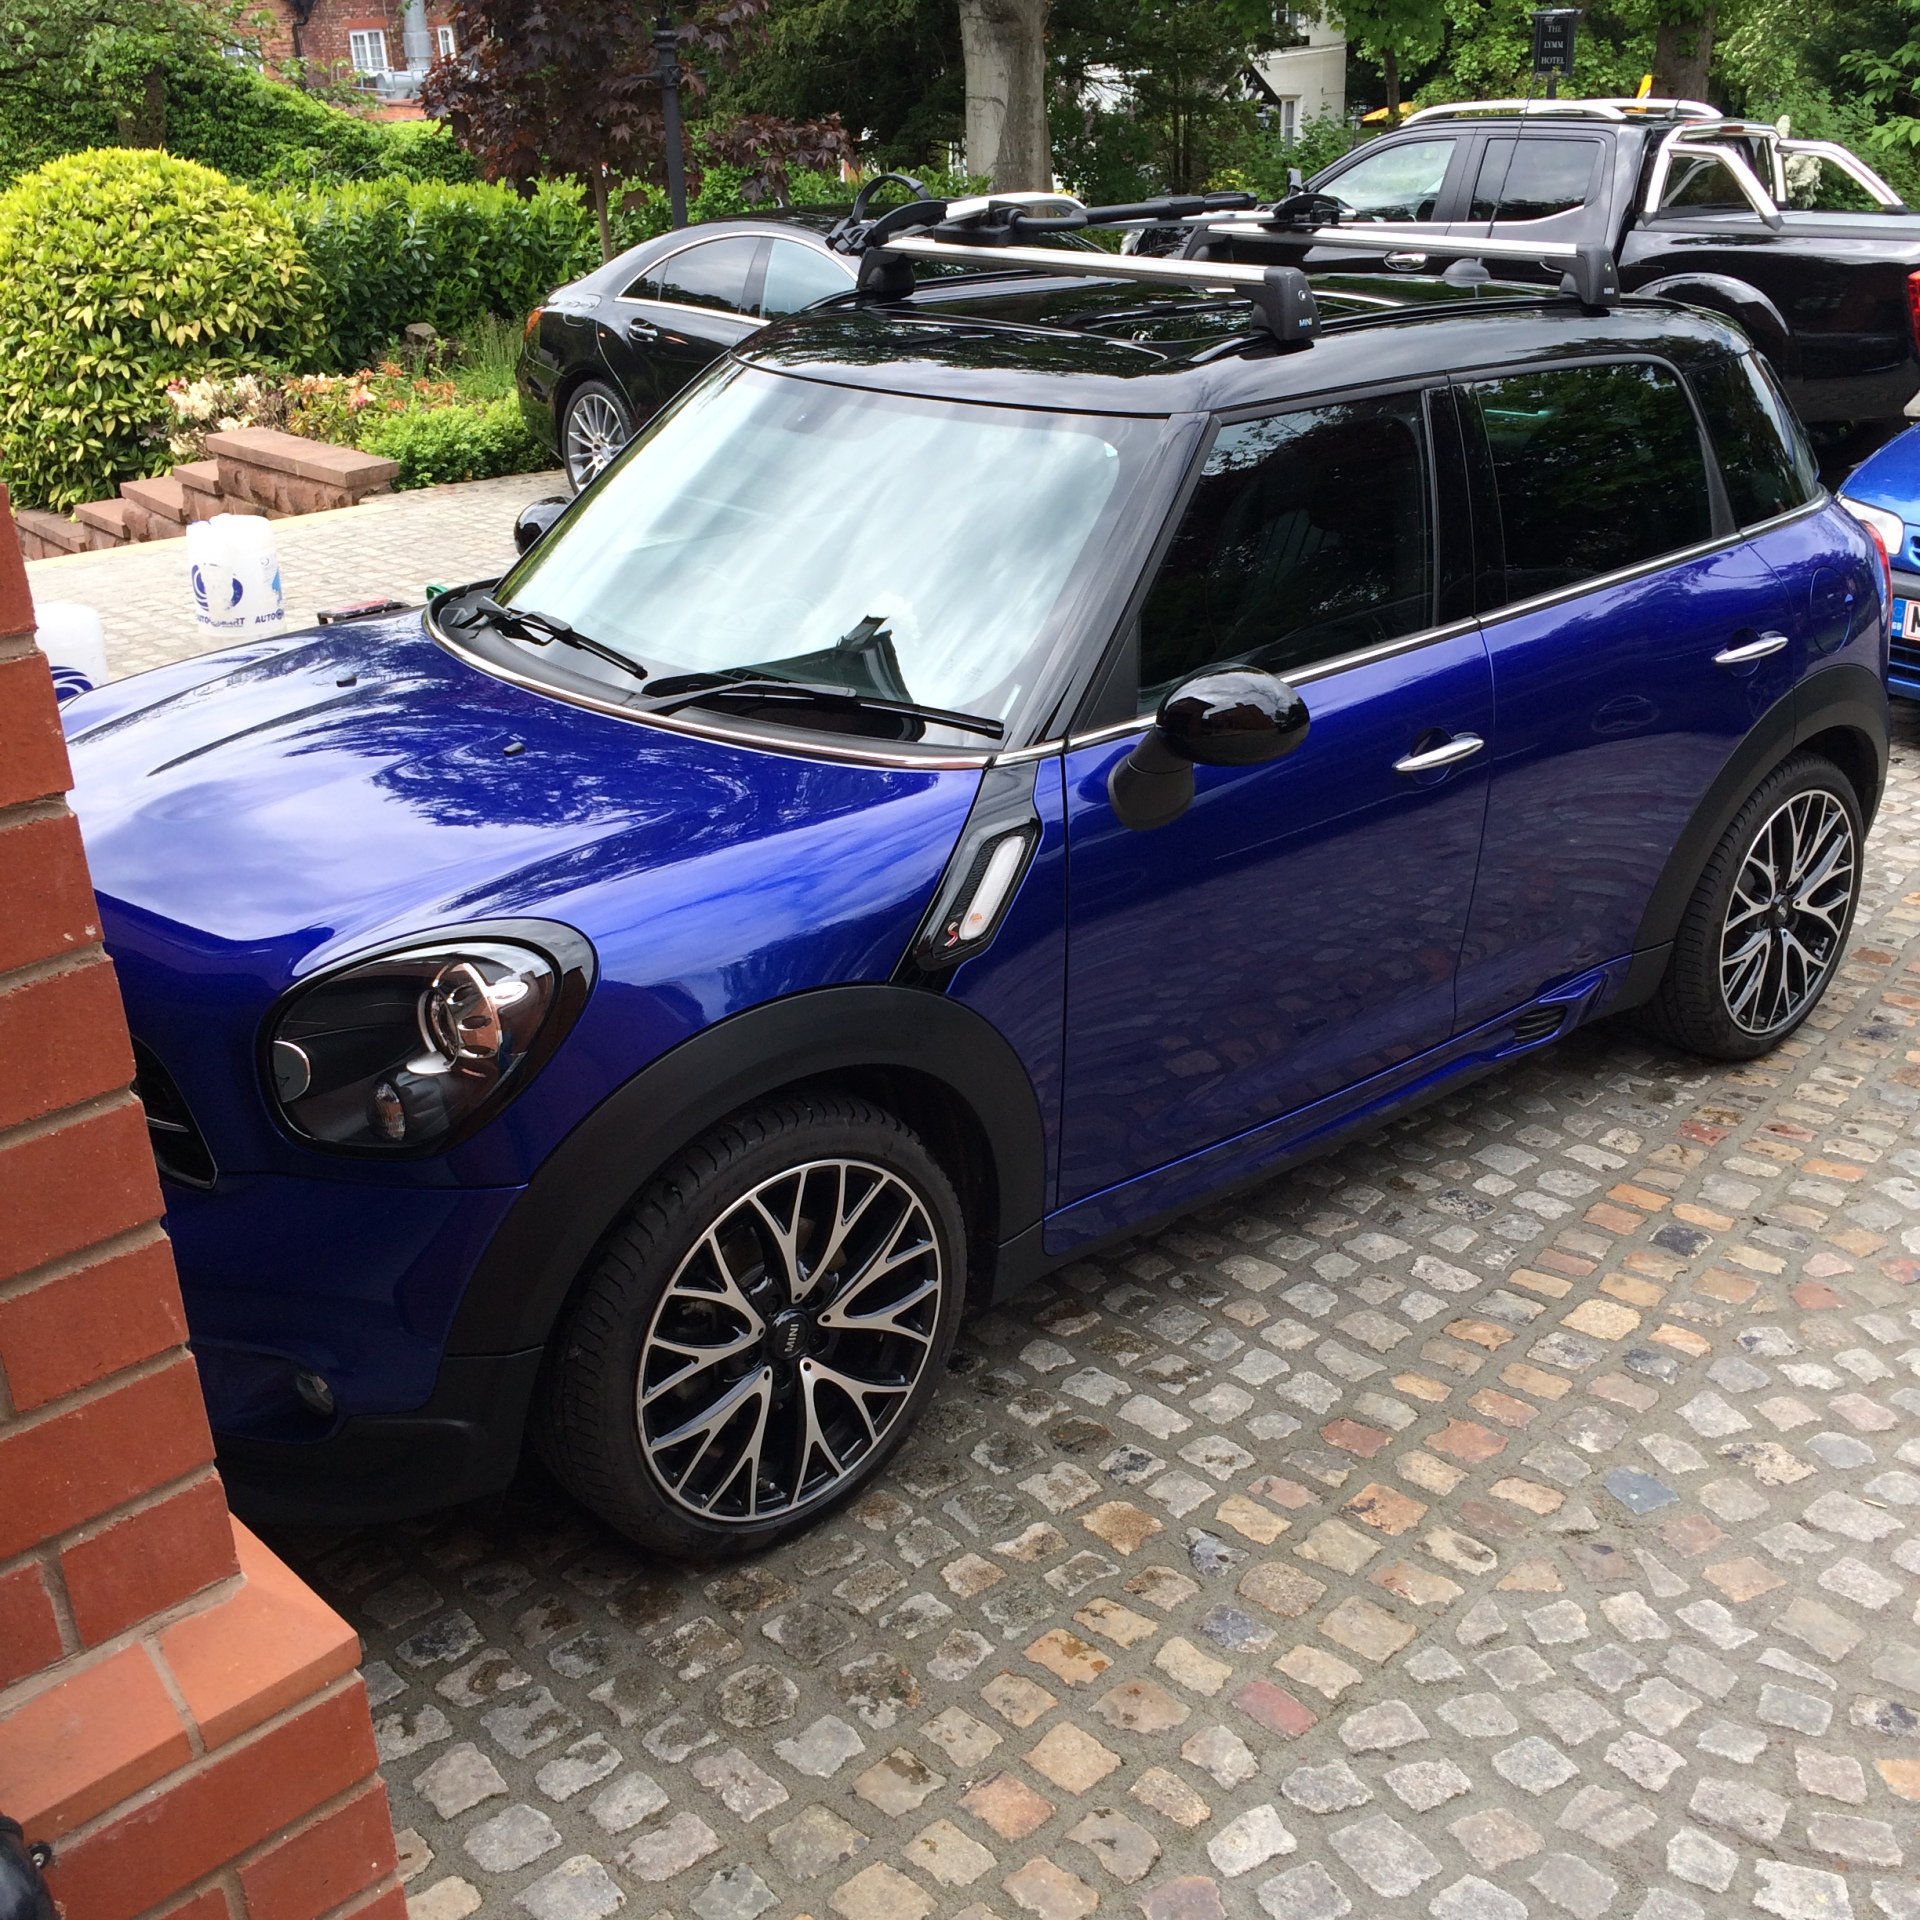 Mini Valet Vs Full Valet - What is the difference?